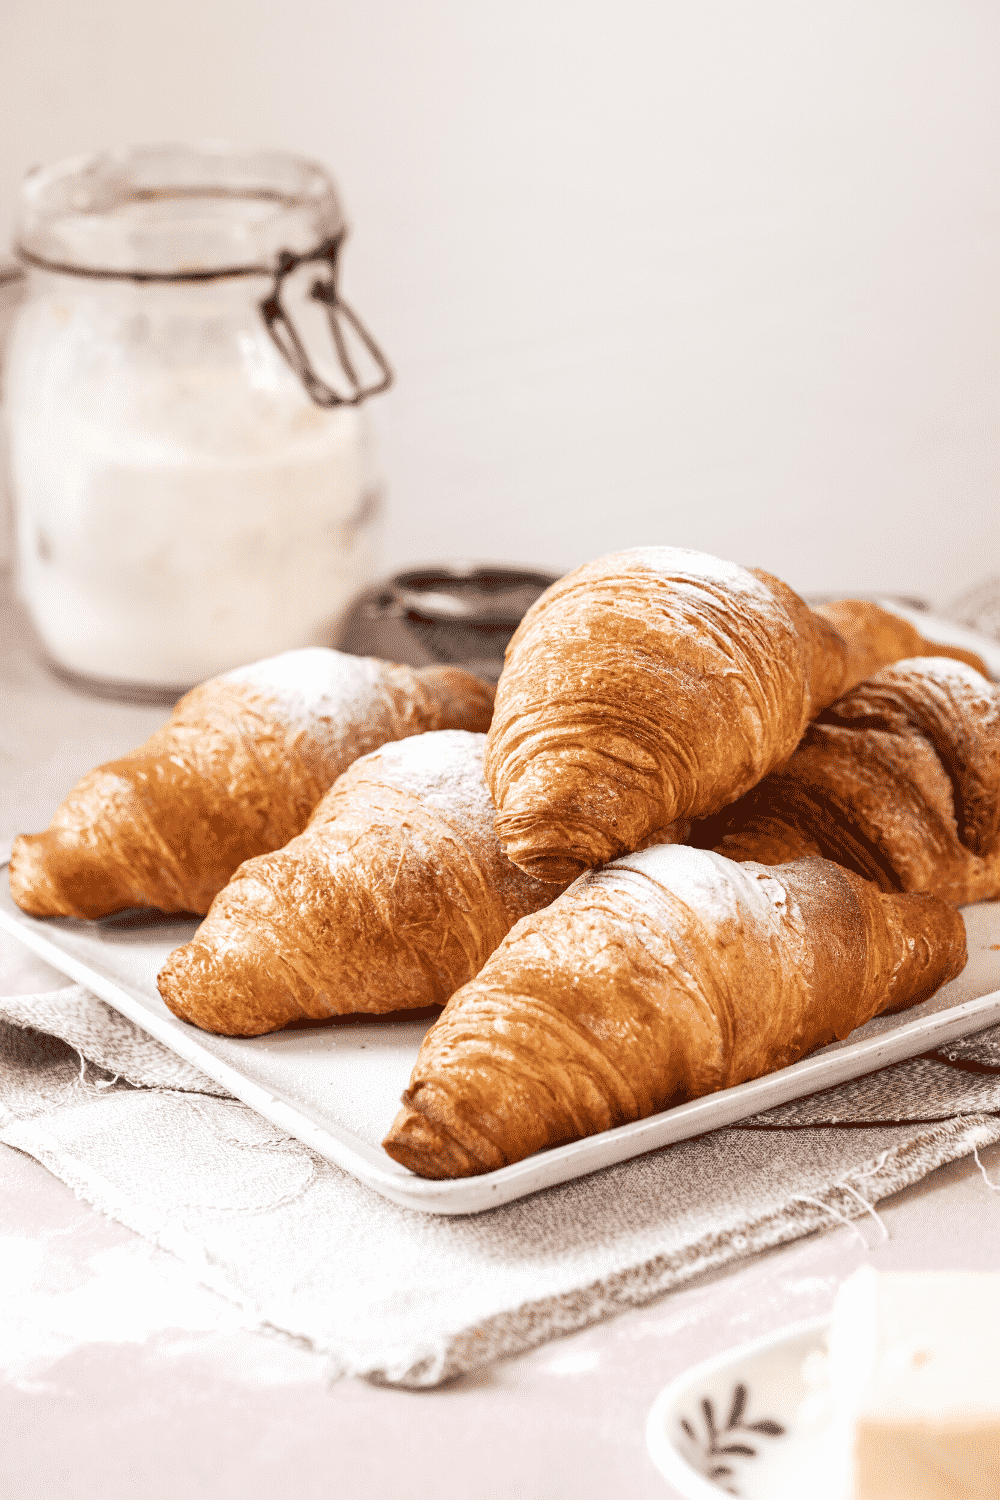 White rectangular plate with a bunch of croissants on it on top of one another. The white plate is on a white tablecloth on a pink counter.